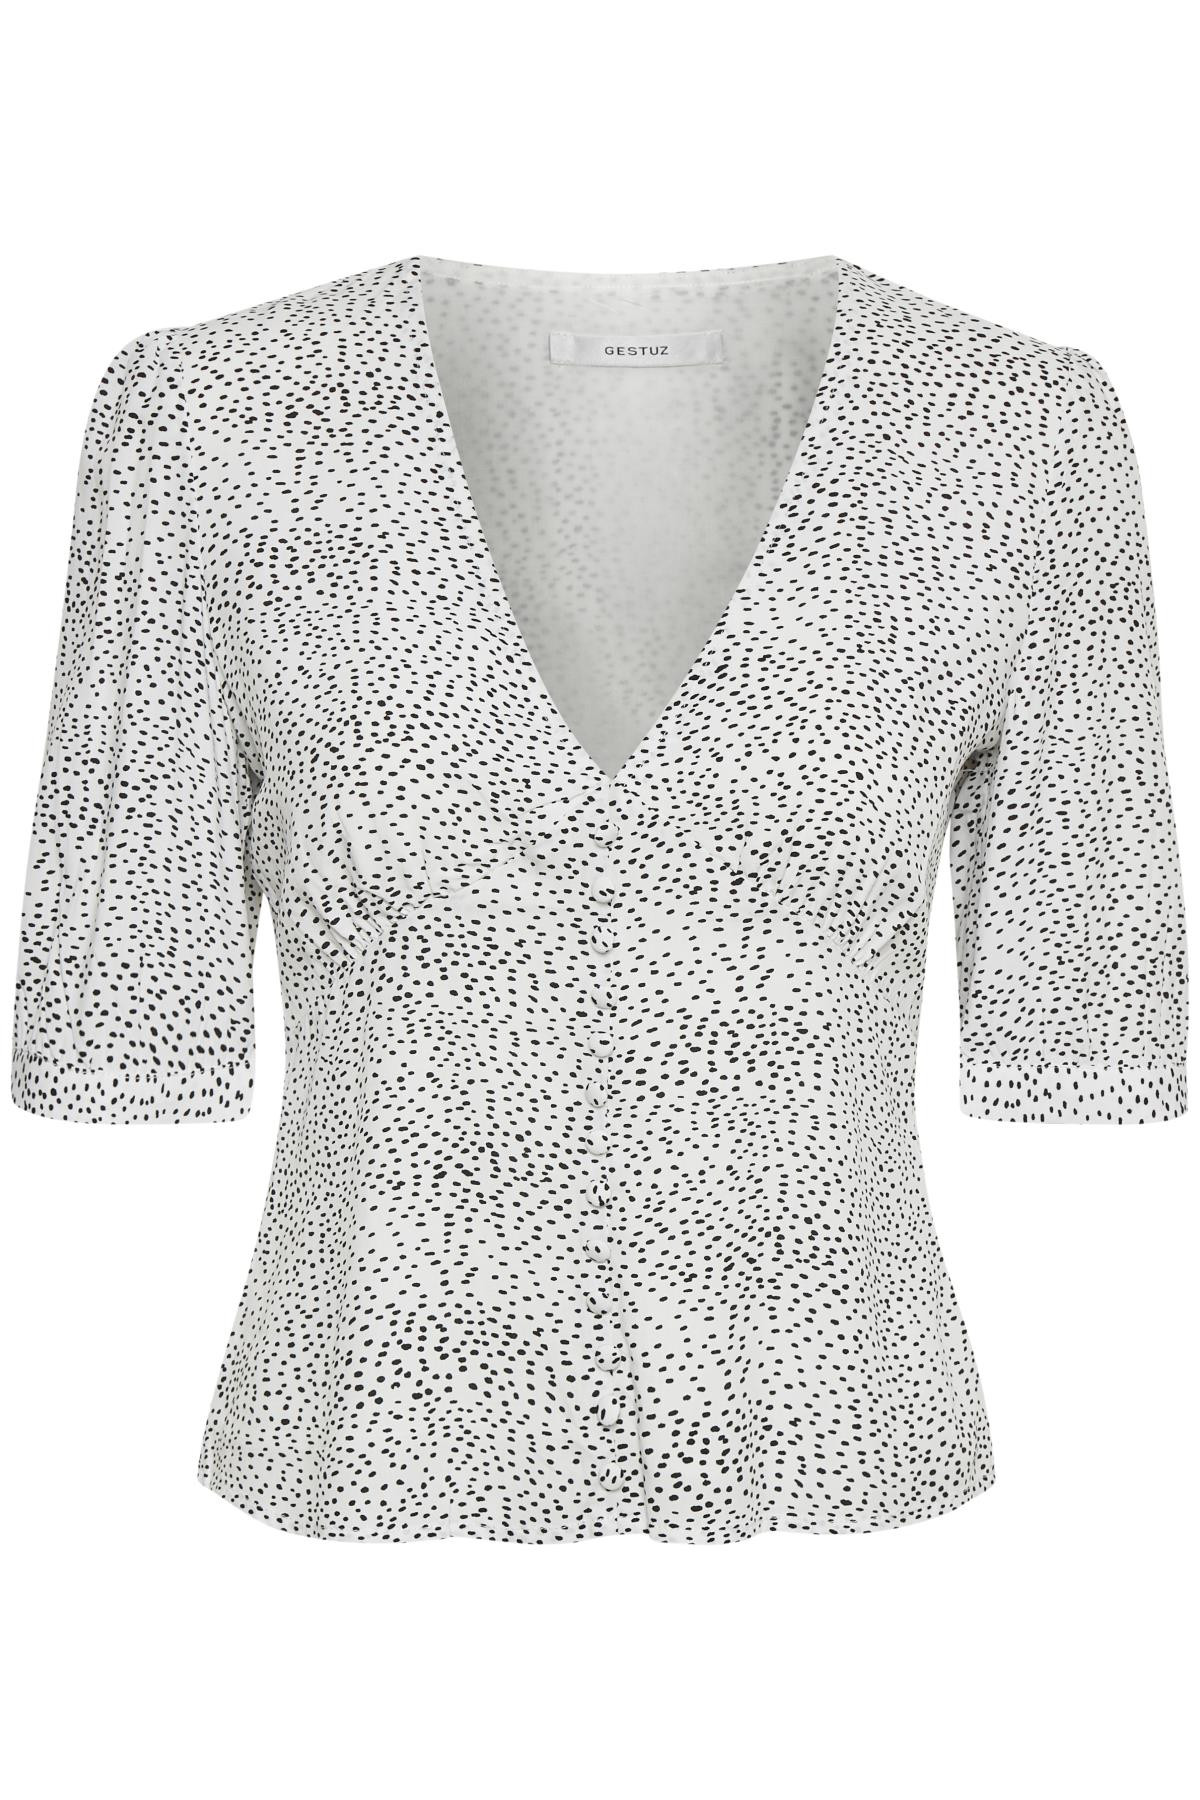 Image of   GESTUZ CATHRINGZ BLUSE (White With Black Dot 90269, 42)